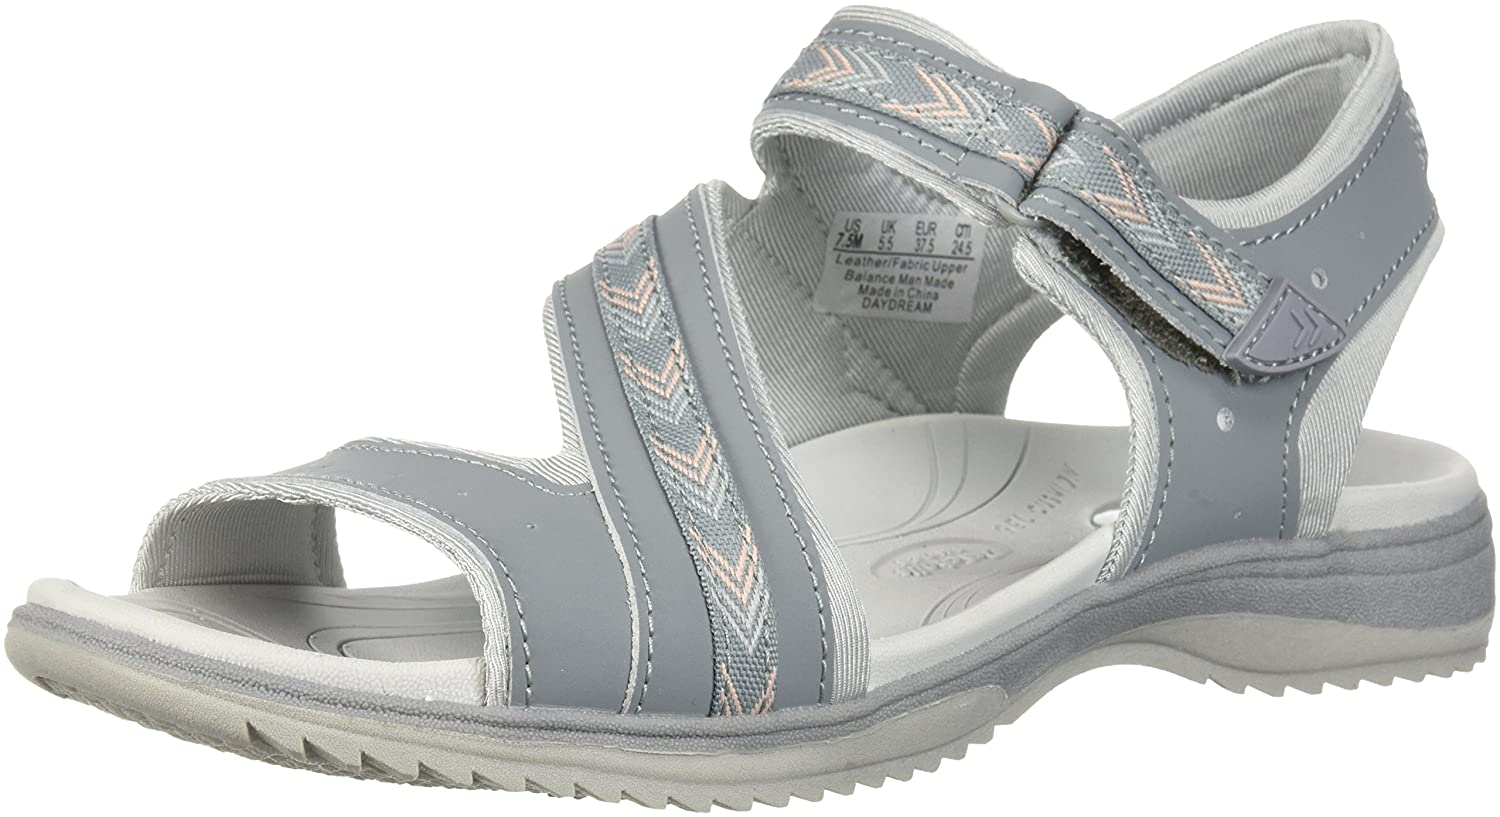 acd362512 Amazon.com  Dr. Scholl s Shoes Women s Daydream Slide Sandal  Shoes